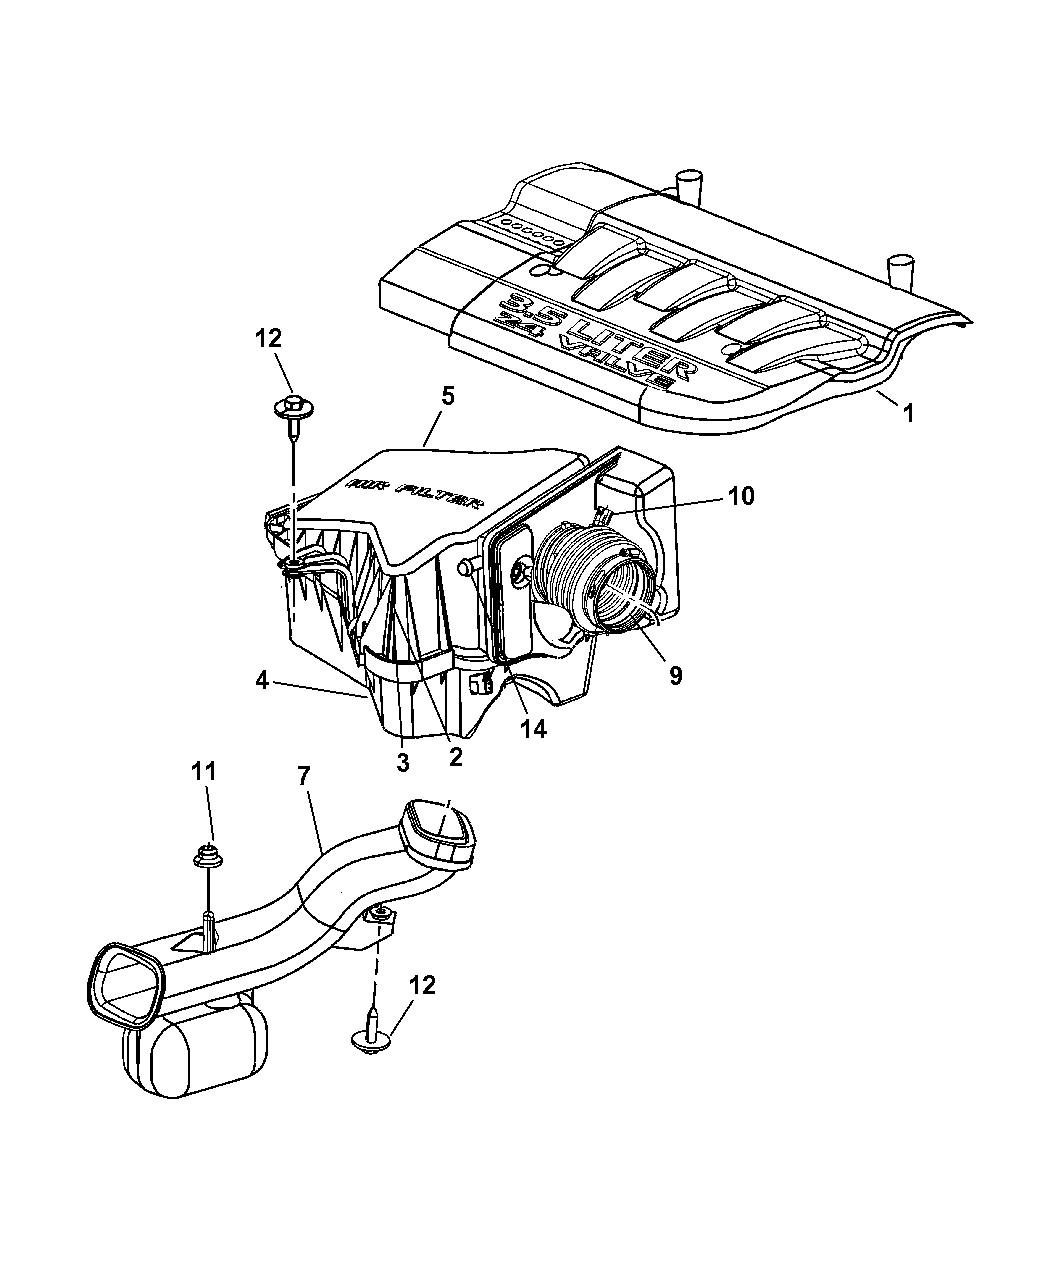 2004 Chrysler Pacifica Air Cleaner & Intake System